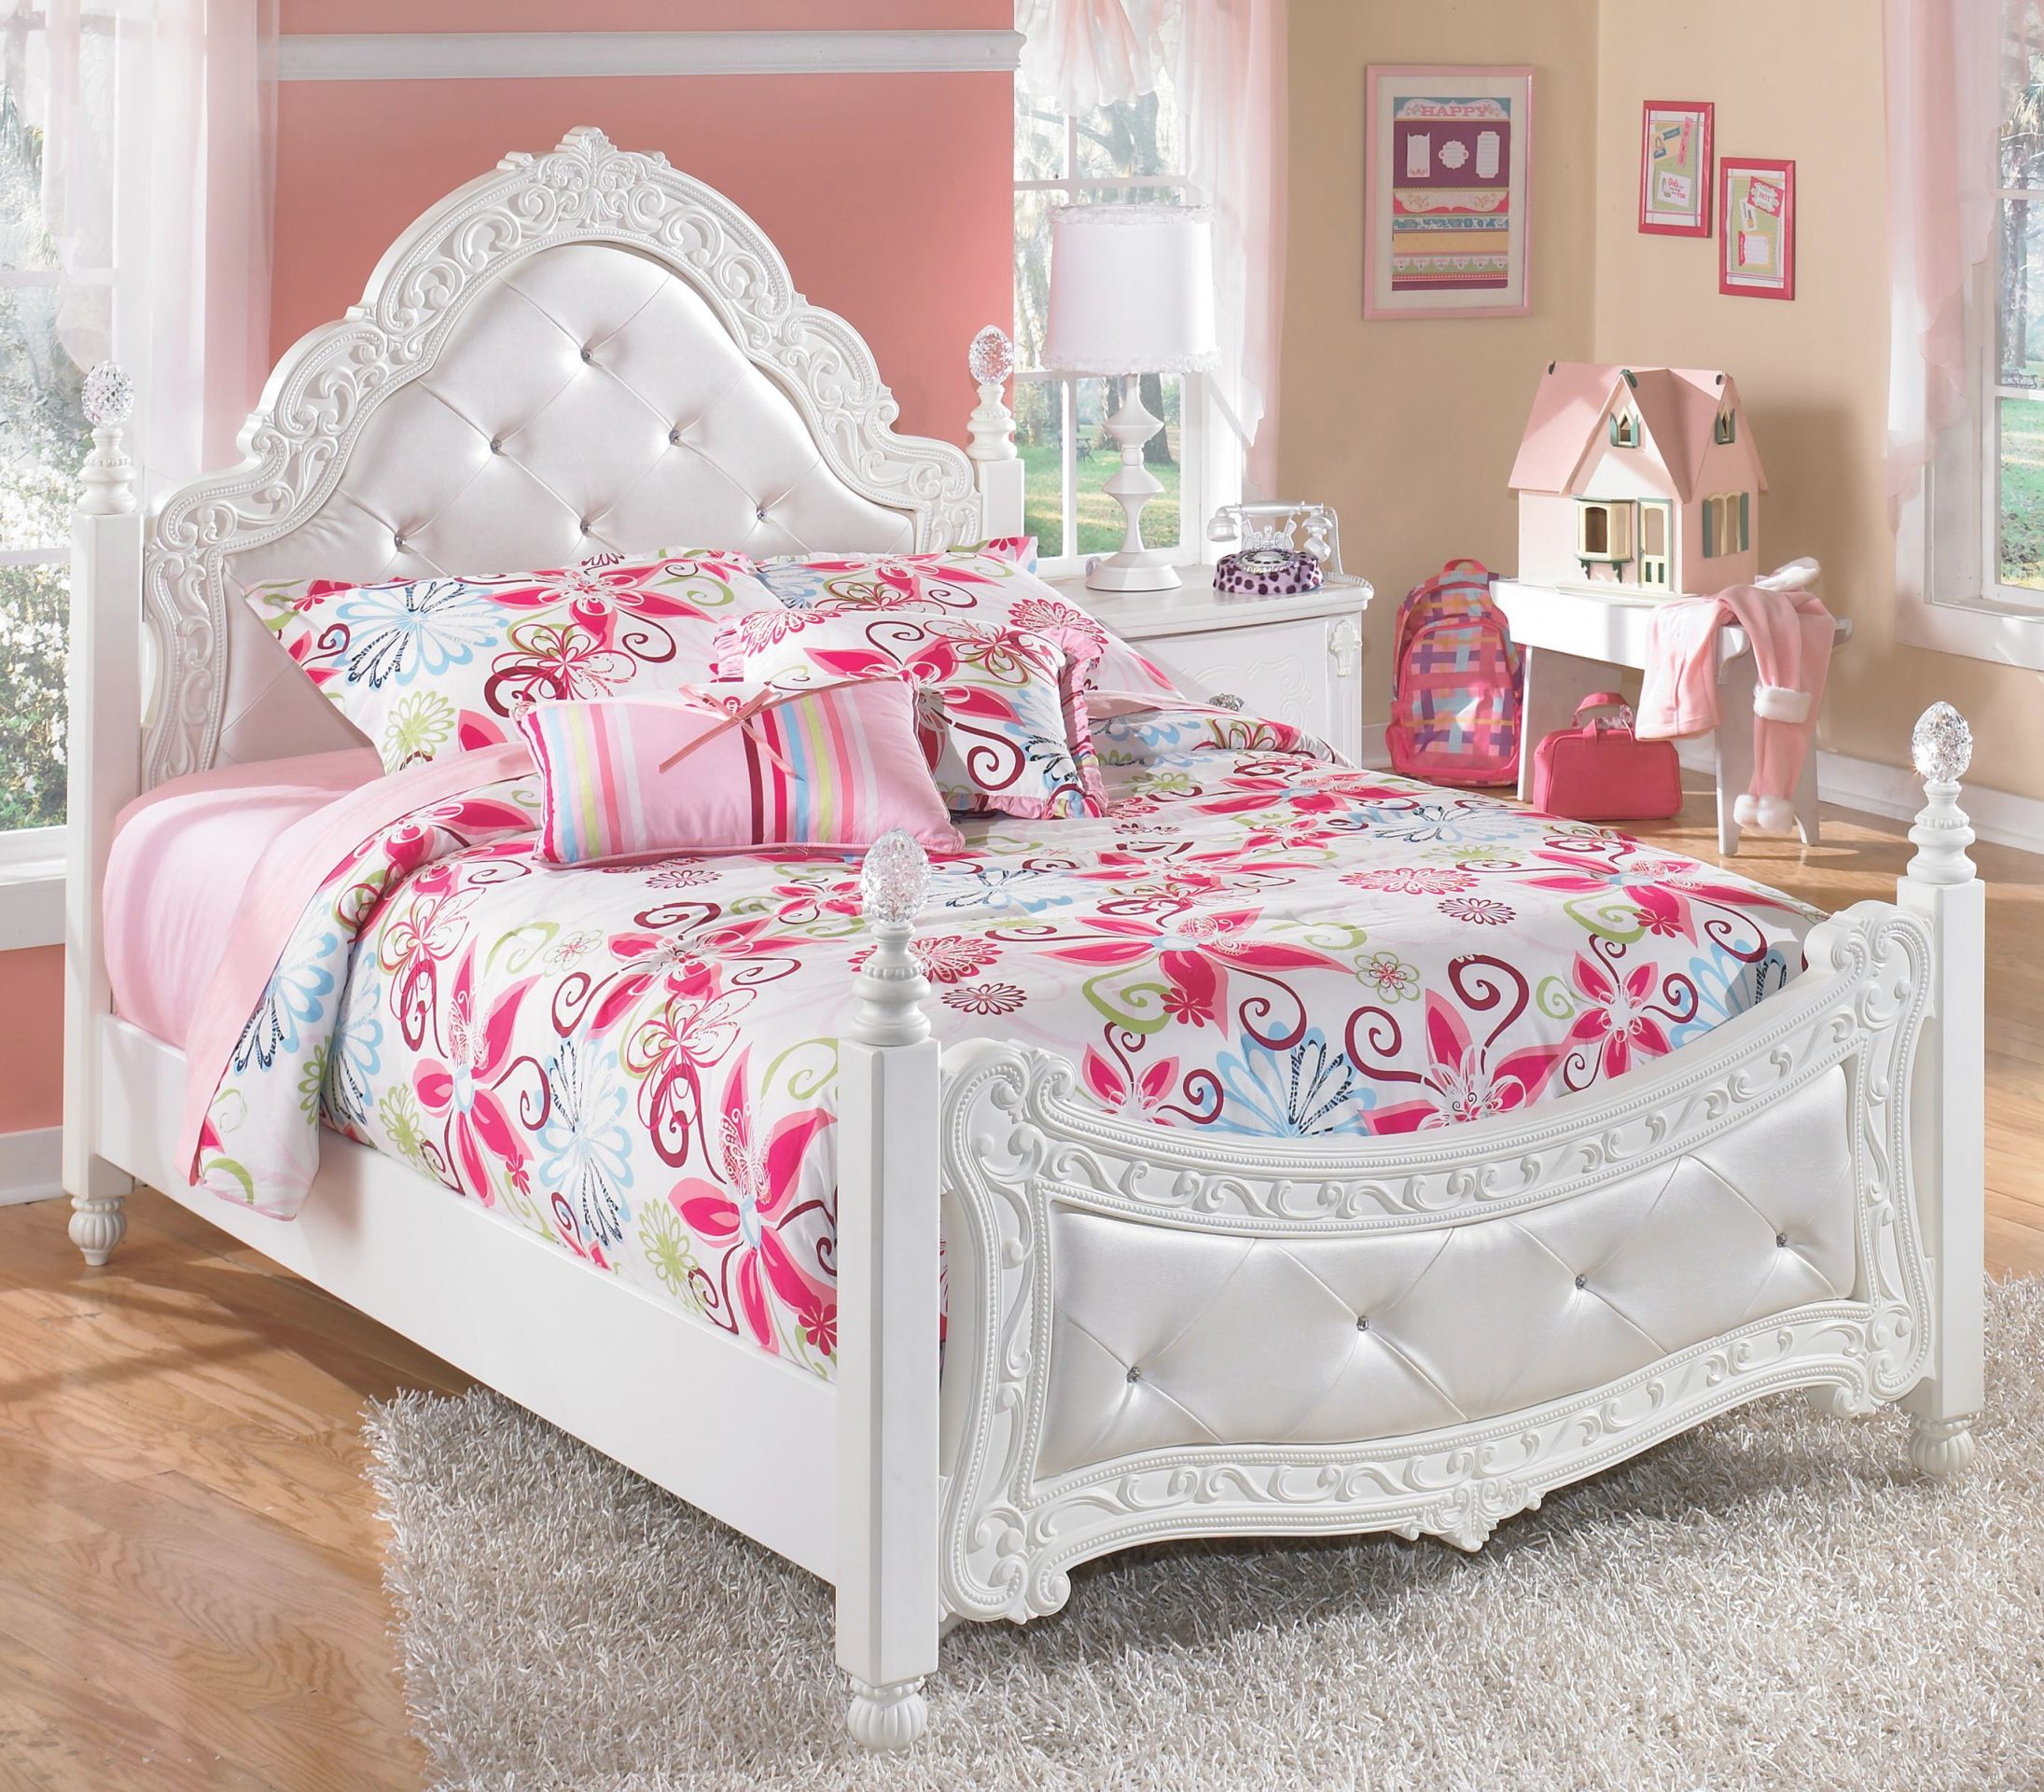 Exquisite Full Ornate Poster Bed With Tufted Headboard & Footboard Signature Designashley At Royal Furniture in Luxury Full Size Bedroom Furniture Sets